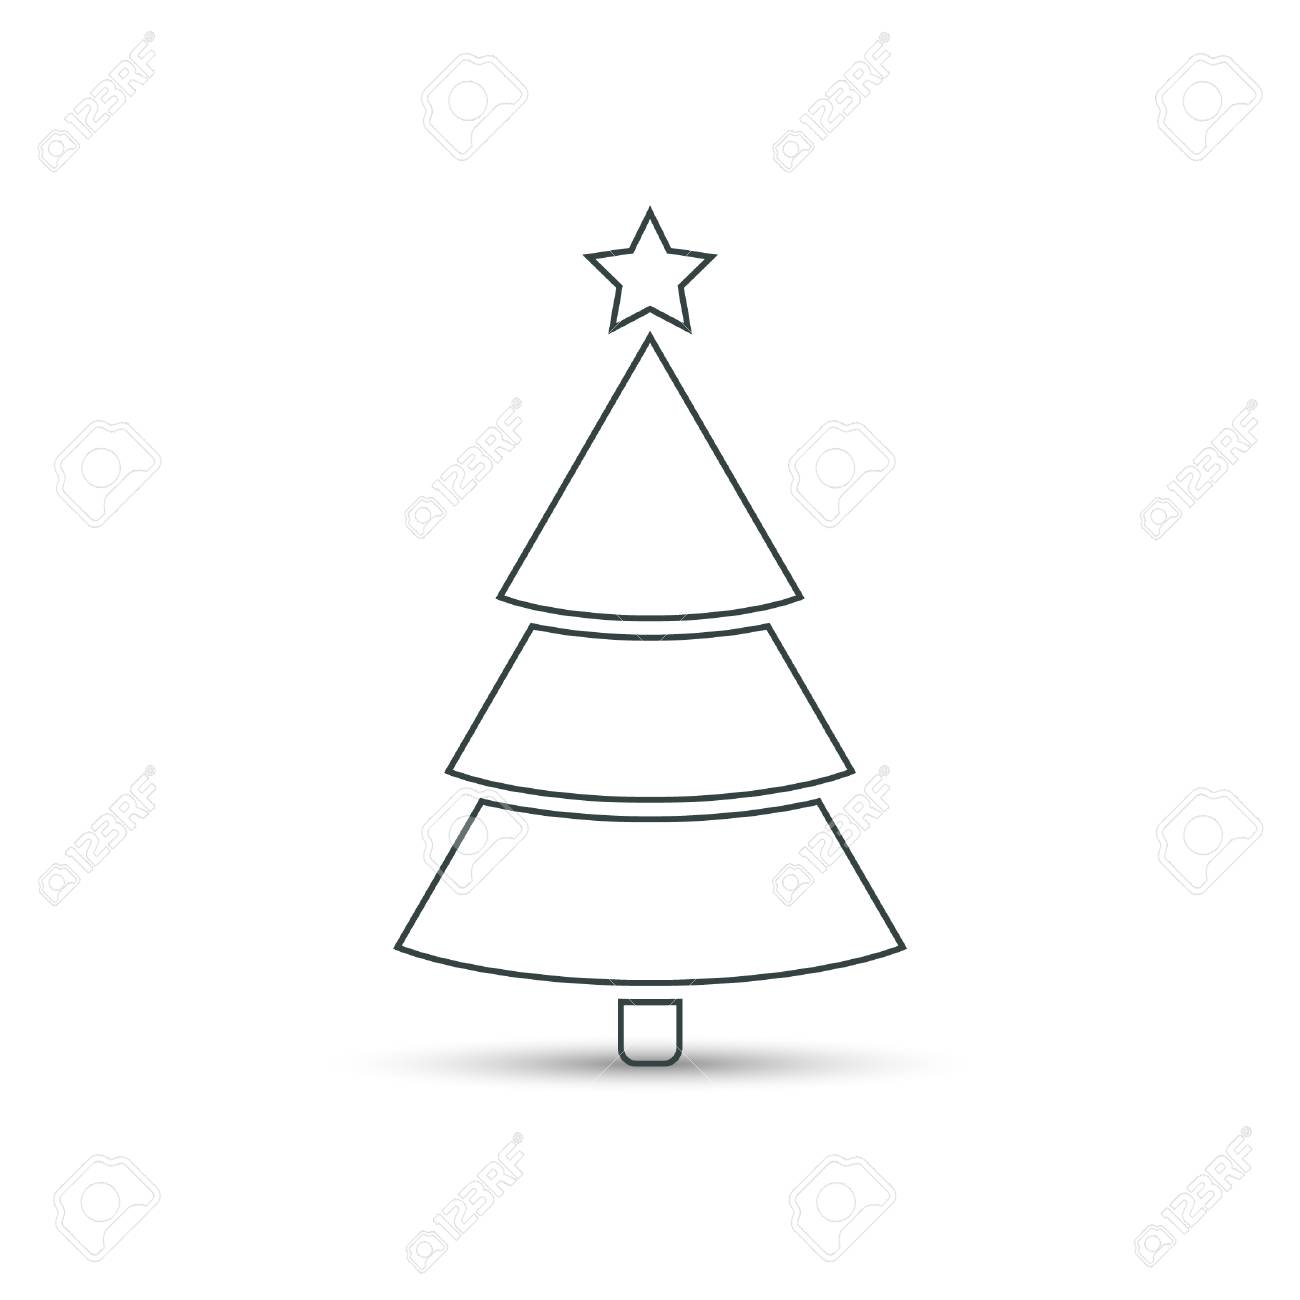 Christmas Tree Flat Outline Icon Vector Simple Design With Shadow